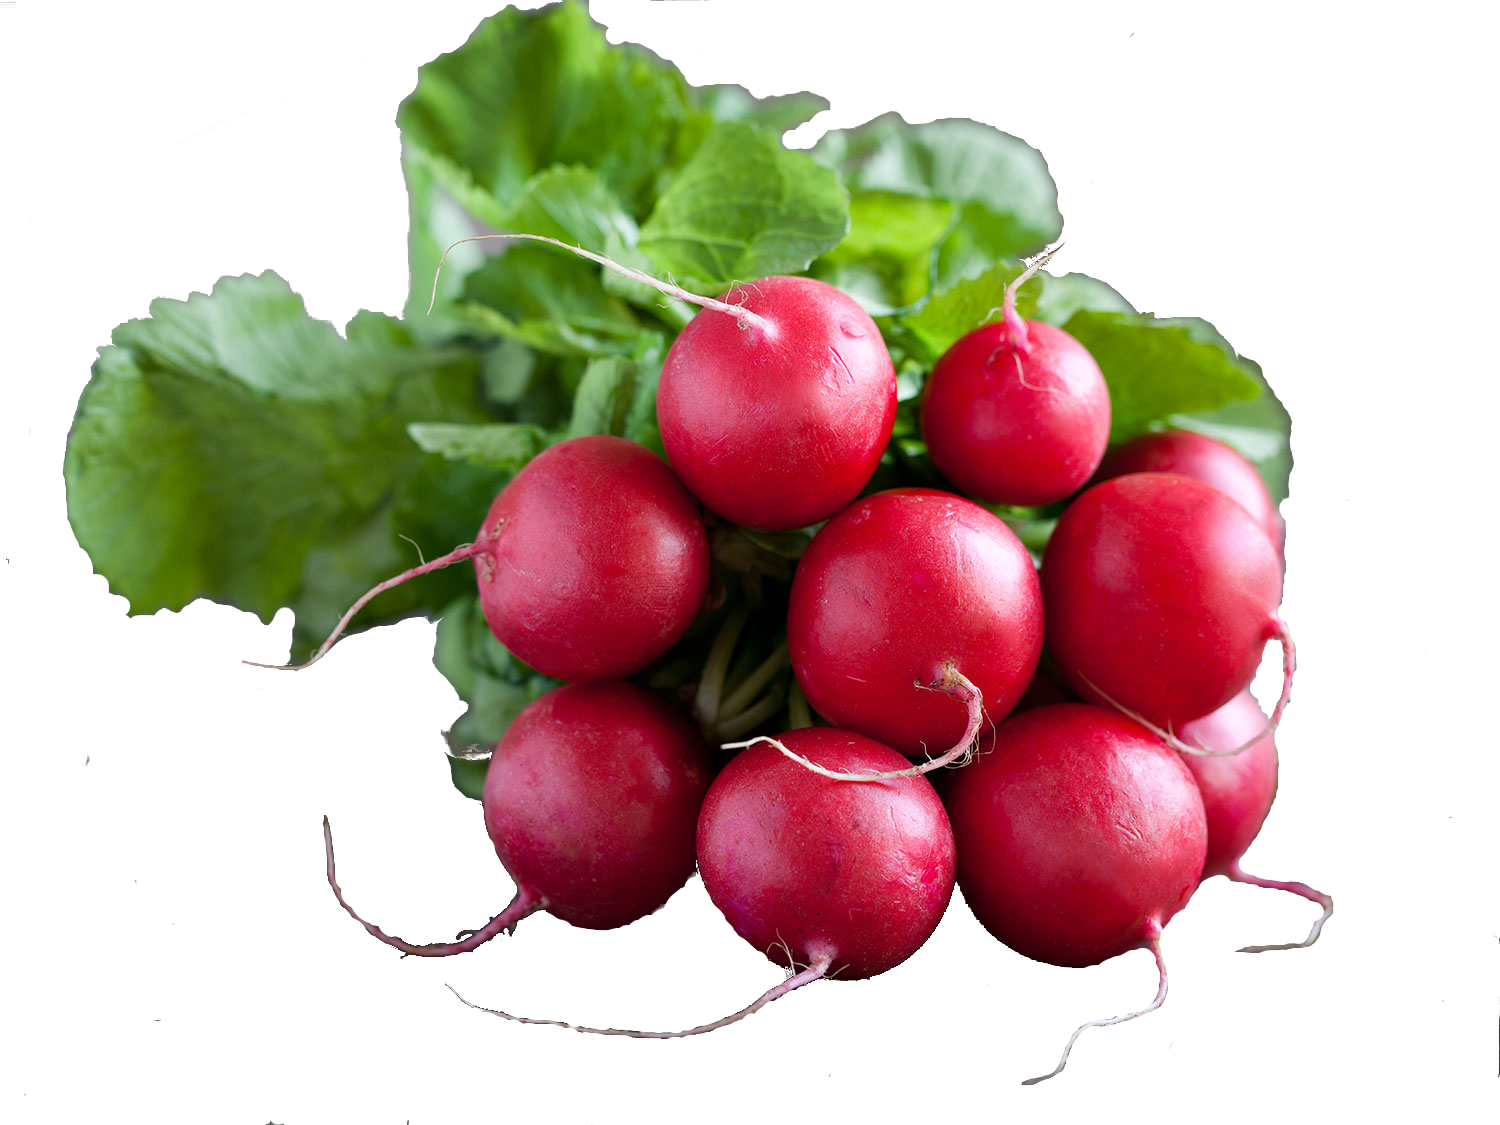 20150519-hey-chef-radishes-shutterstock